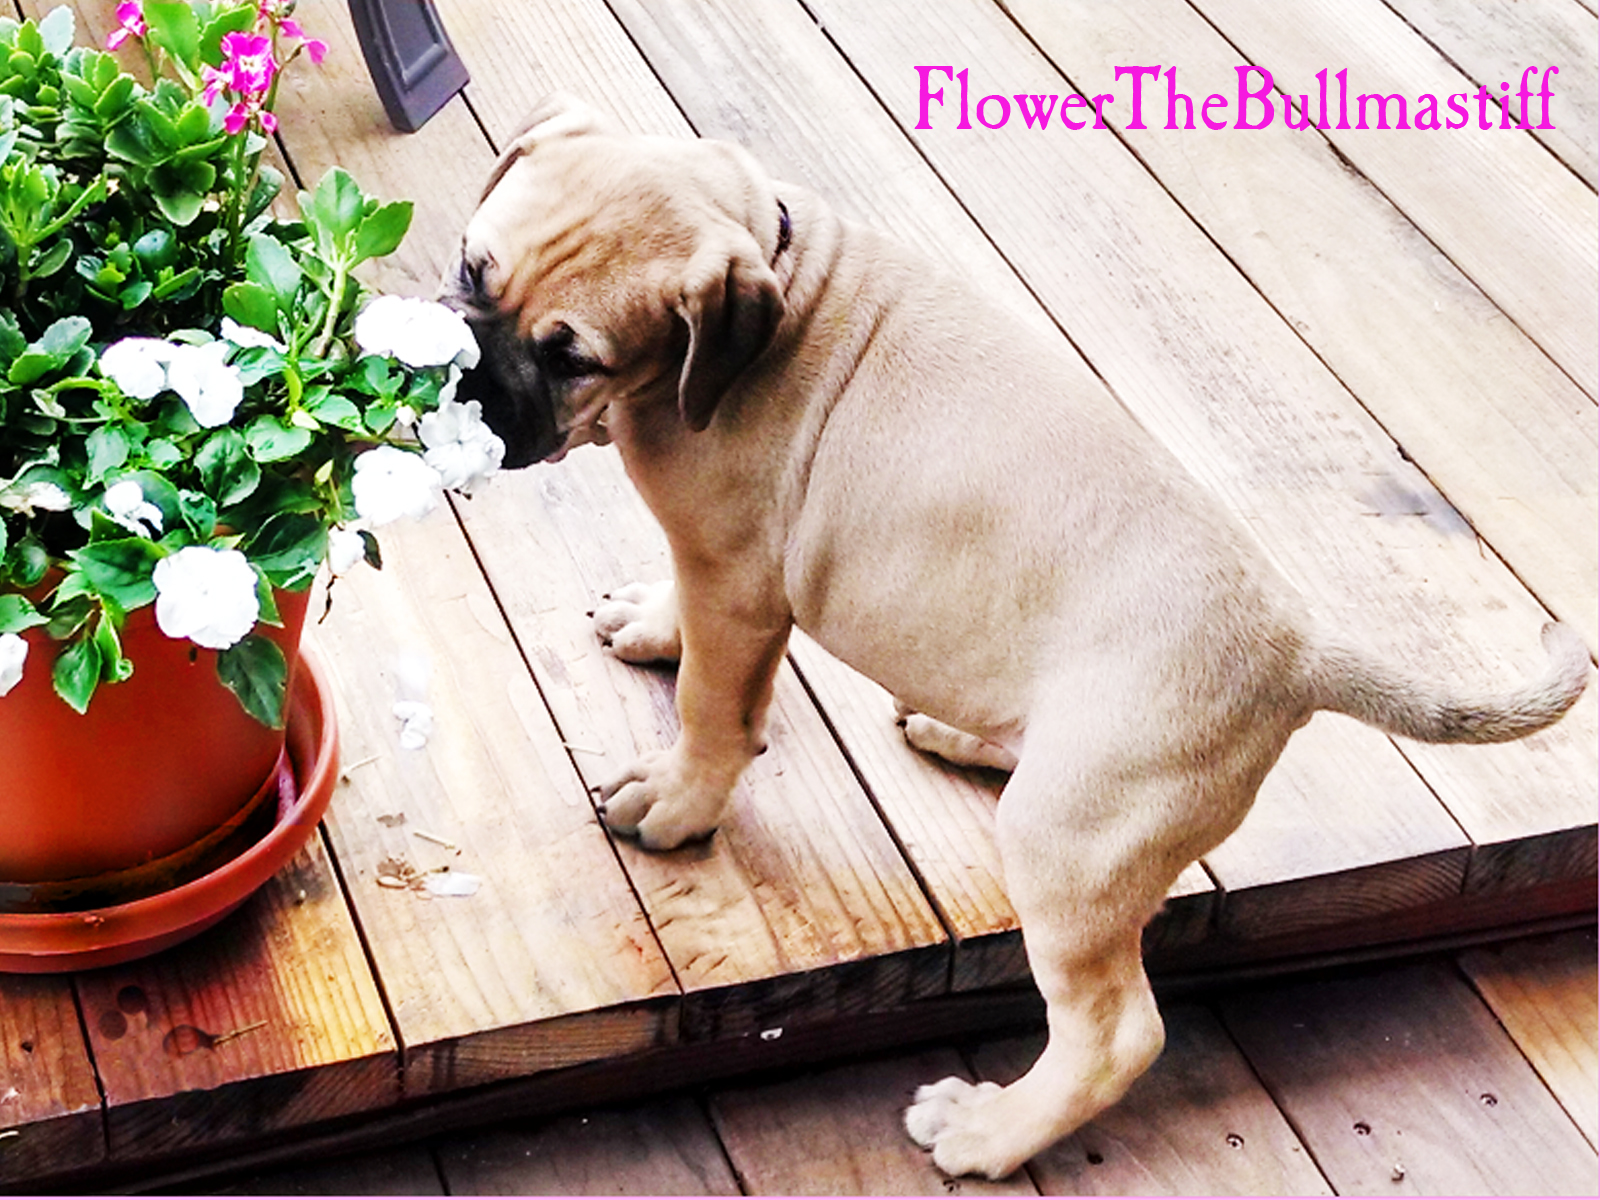 Flower The Bullmastiff - Taking time to smell the Flowers 1600x1200